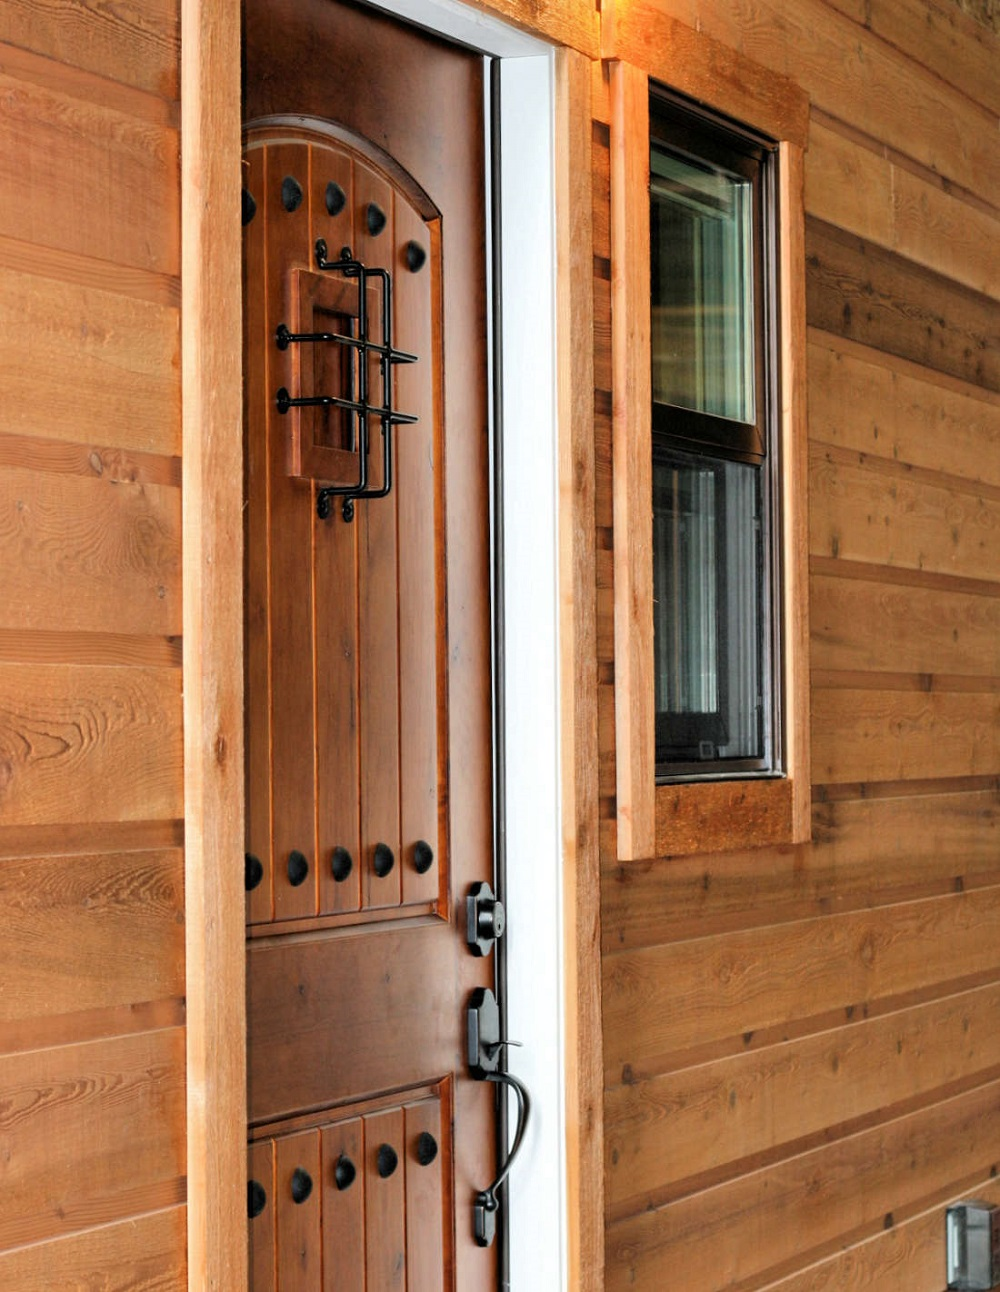 t8-5 types of wood paneling that you can use on the outside of your home